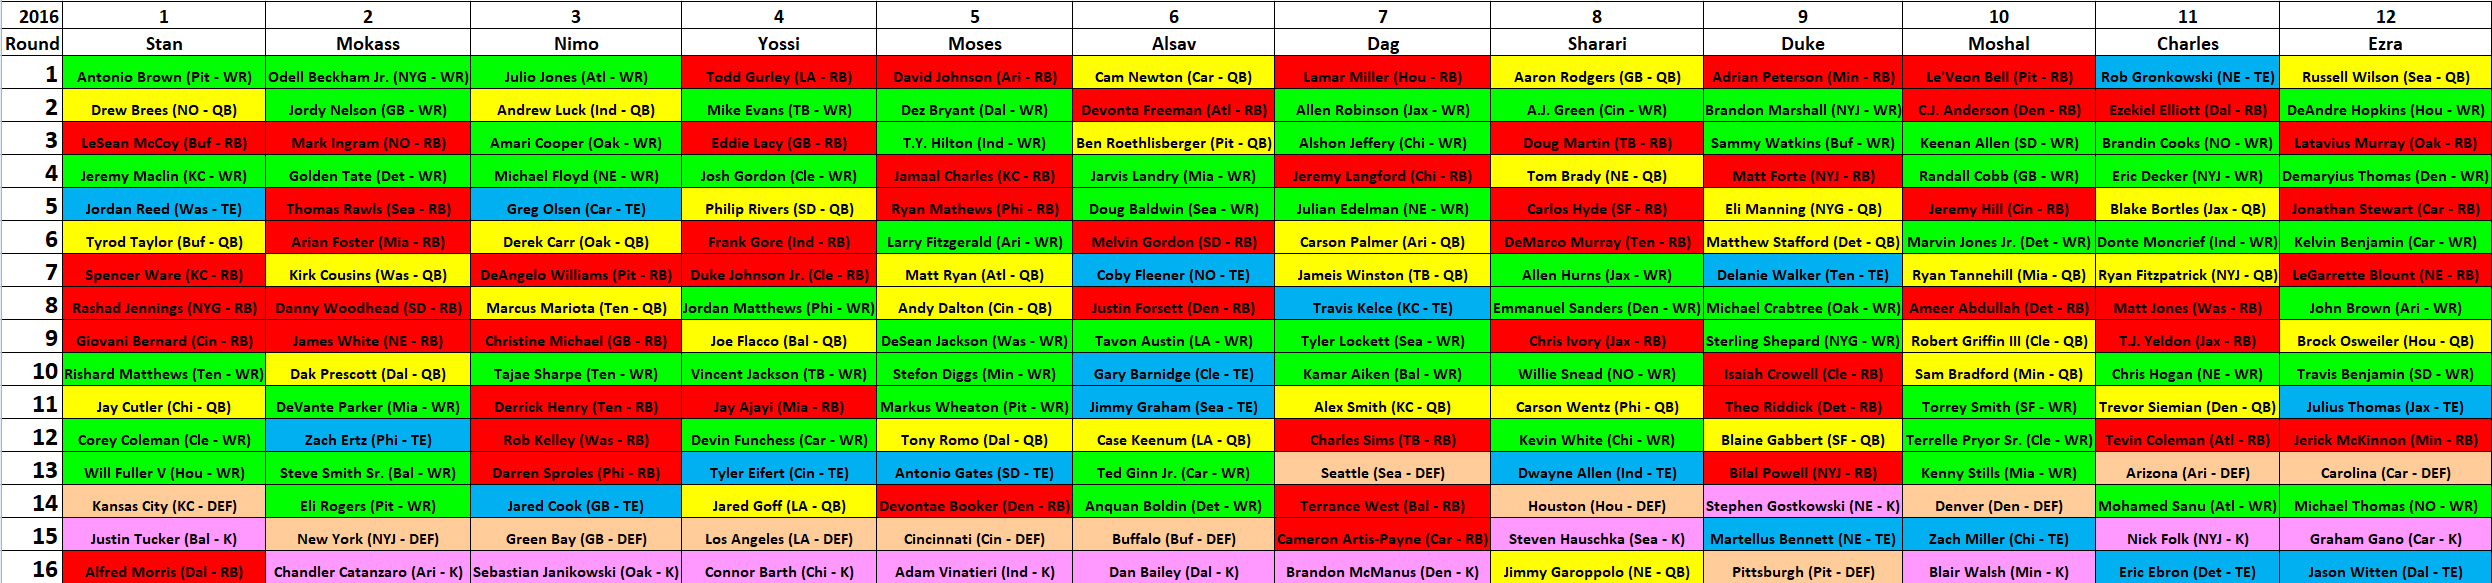 2016 MAZZA LEAGUE DRAFT BOARD – YEAR 10